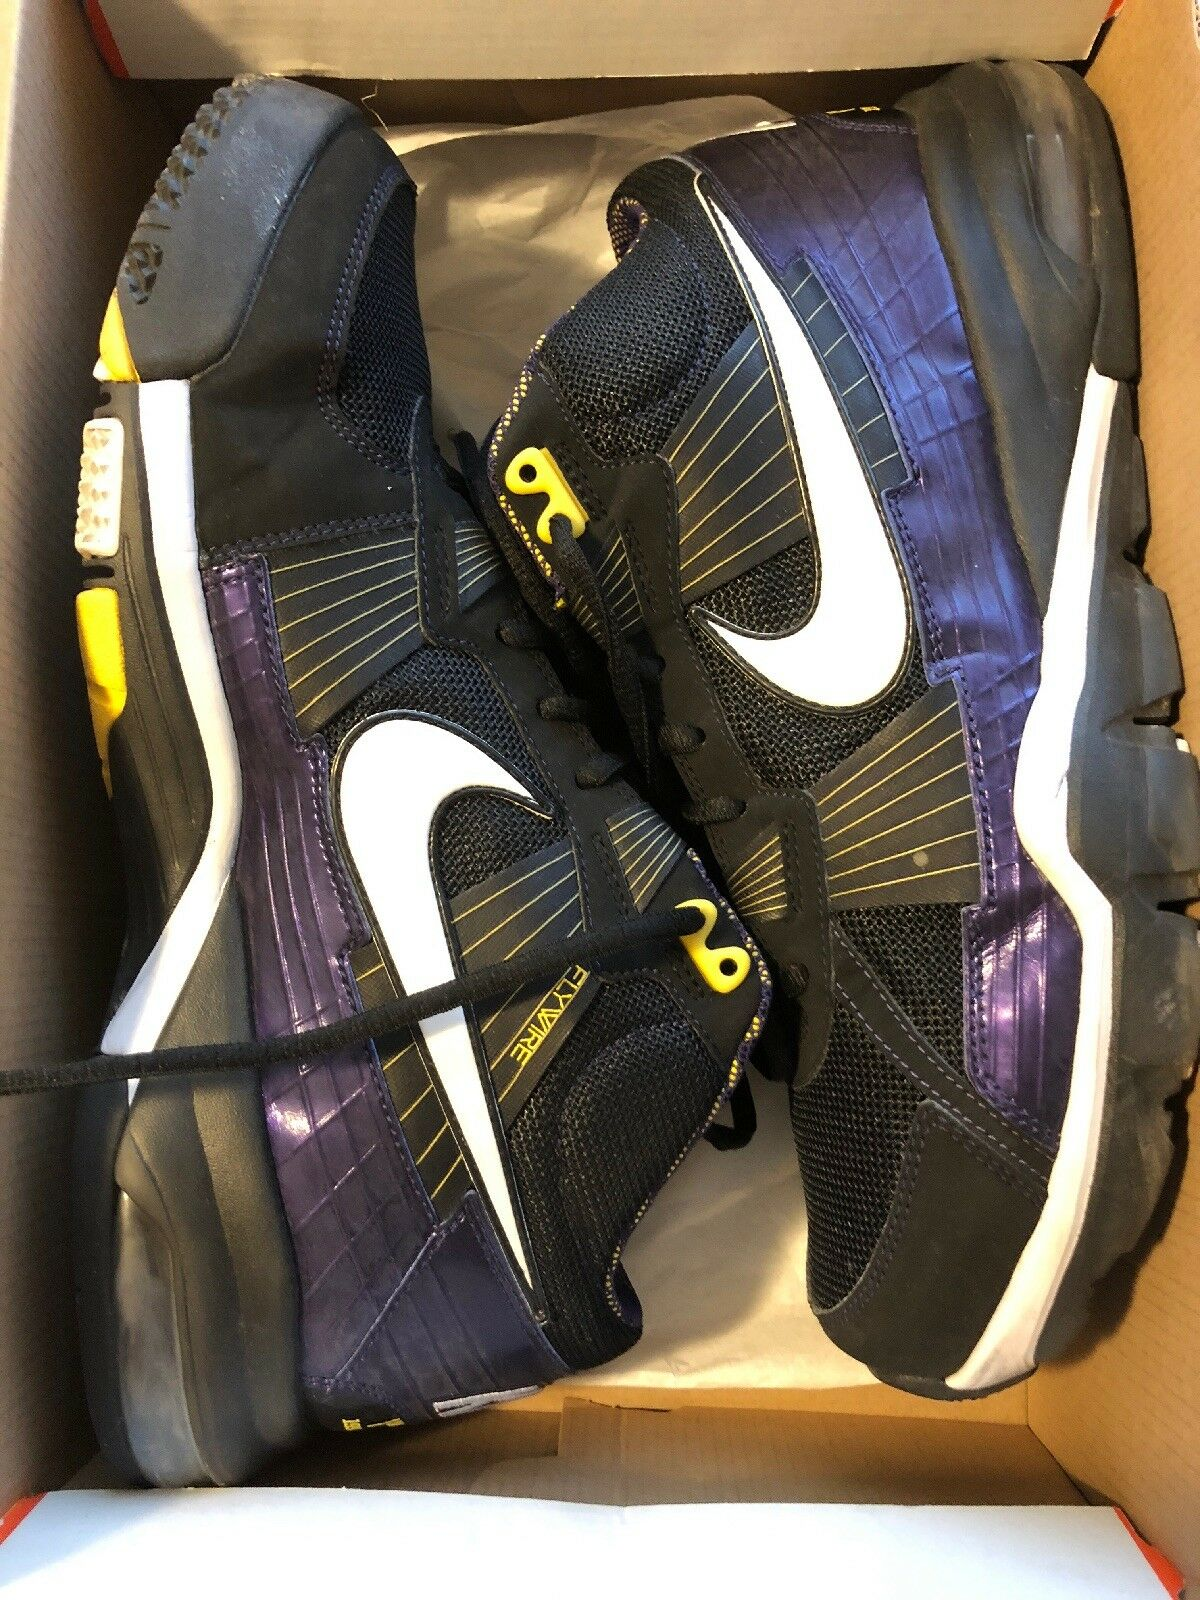 Nike Trainer SC 2010 Adrian Peterson Edition Size 10.5